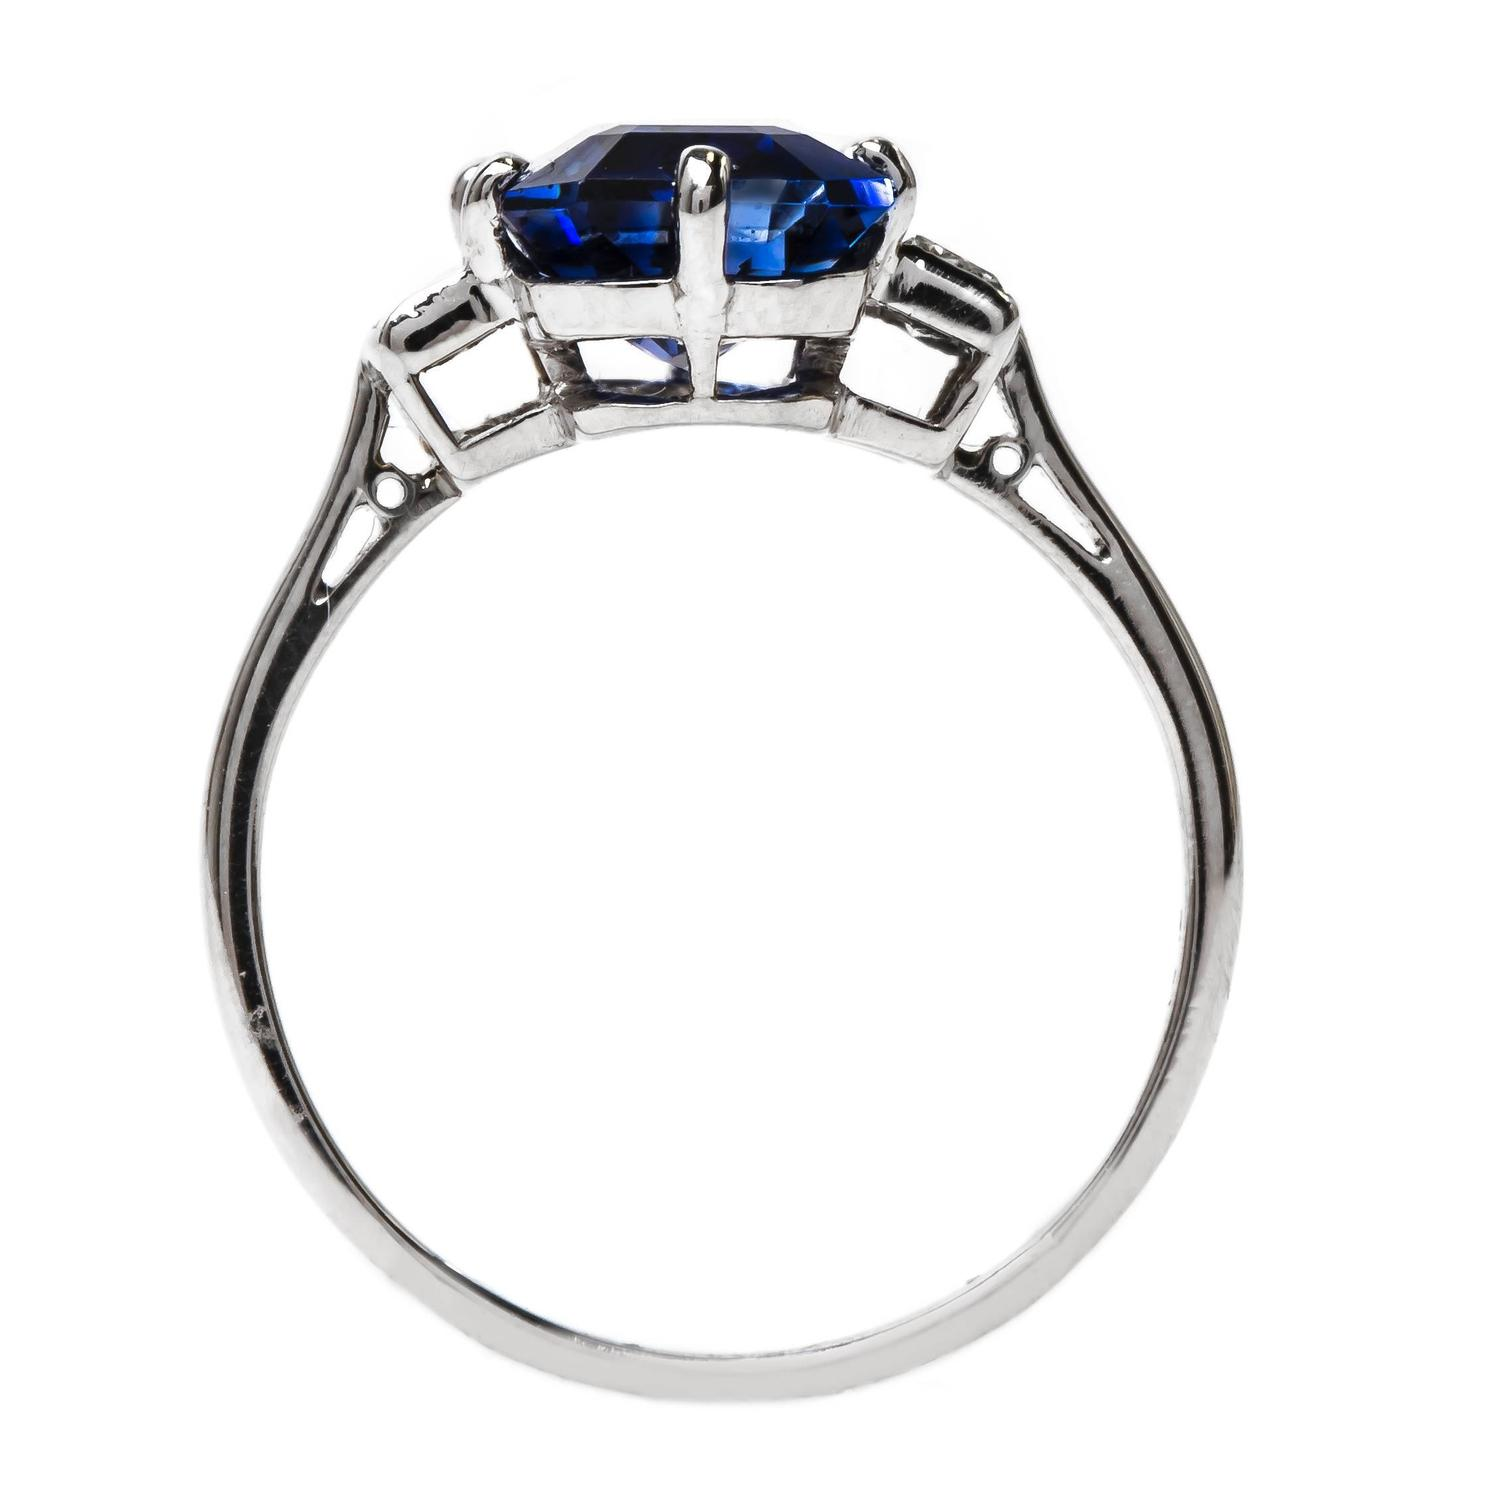 Remarkable Art Deco 4 25 Carat Rectangular Sapphire Diamond Engagement Ring a